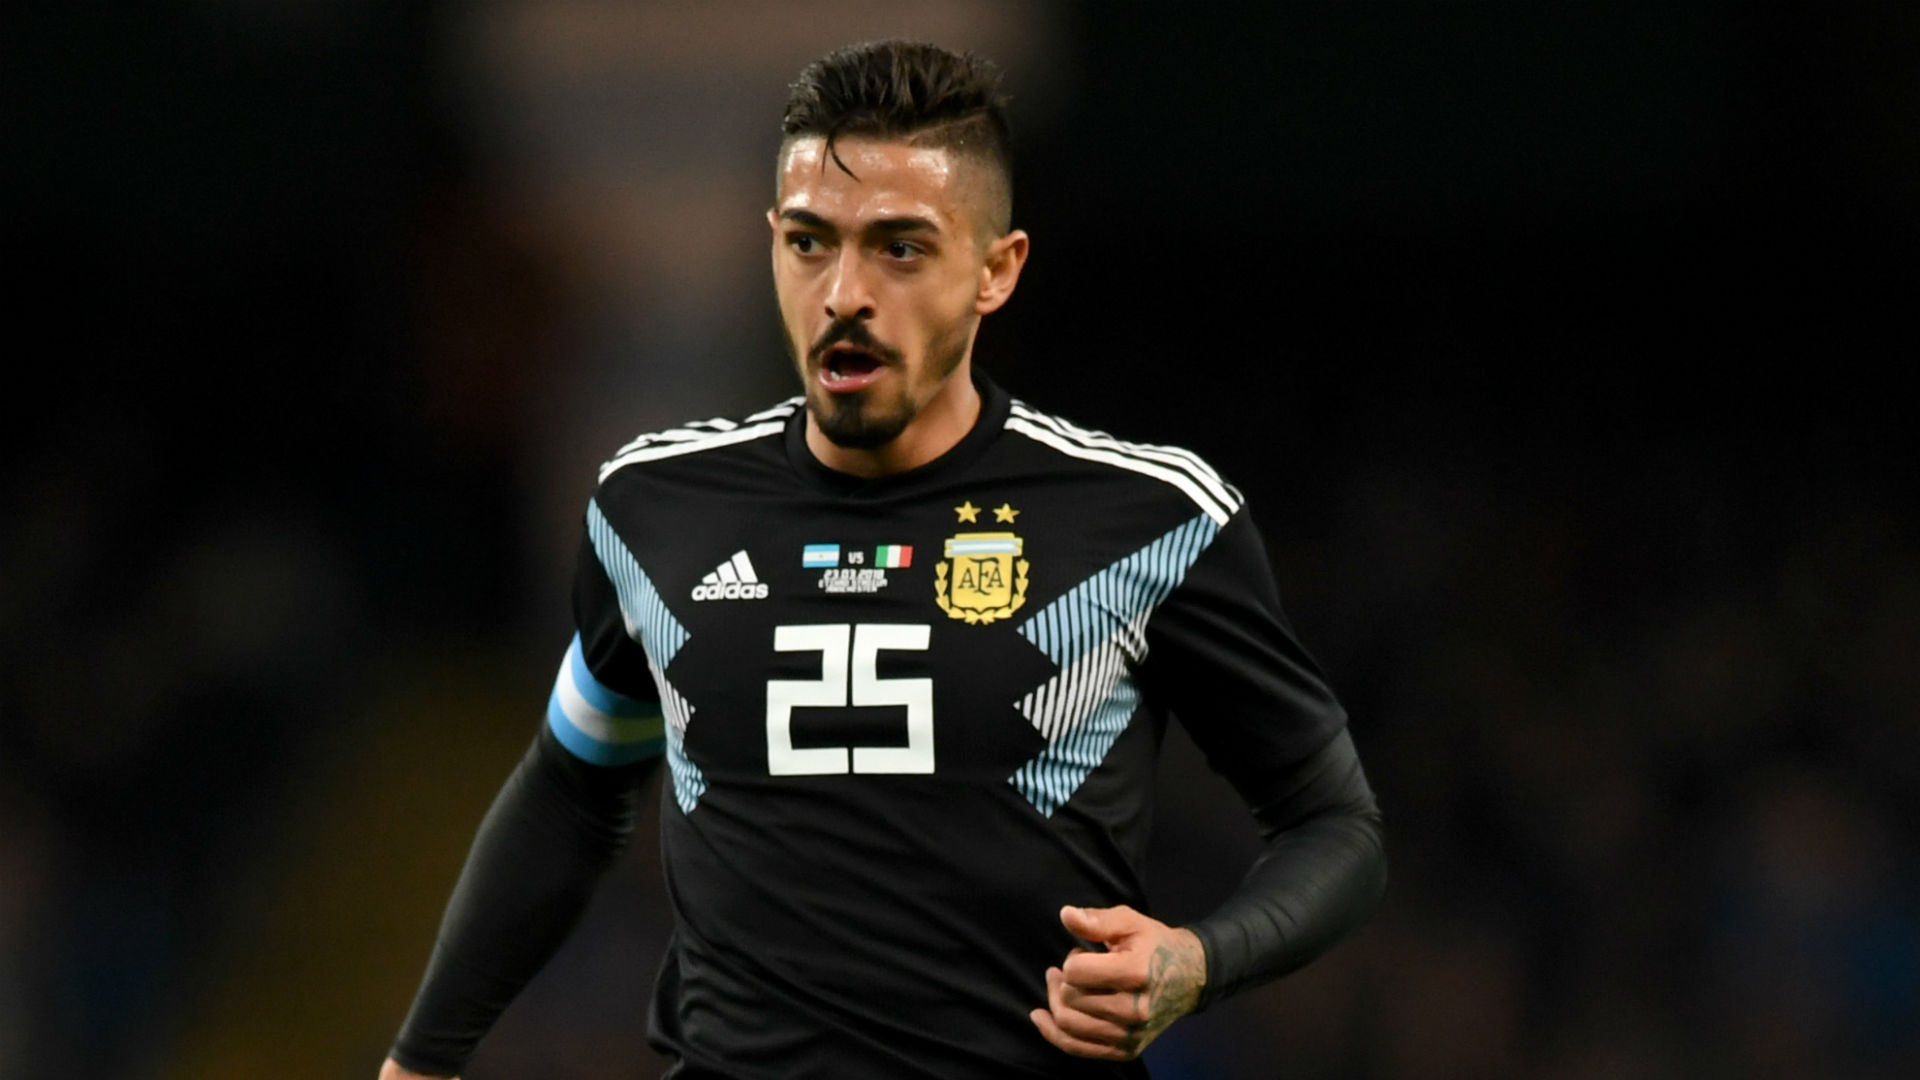 West Ham fans have been reacting to Manuel Lanzini injury news